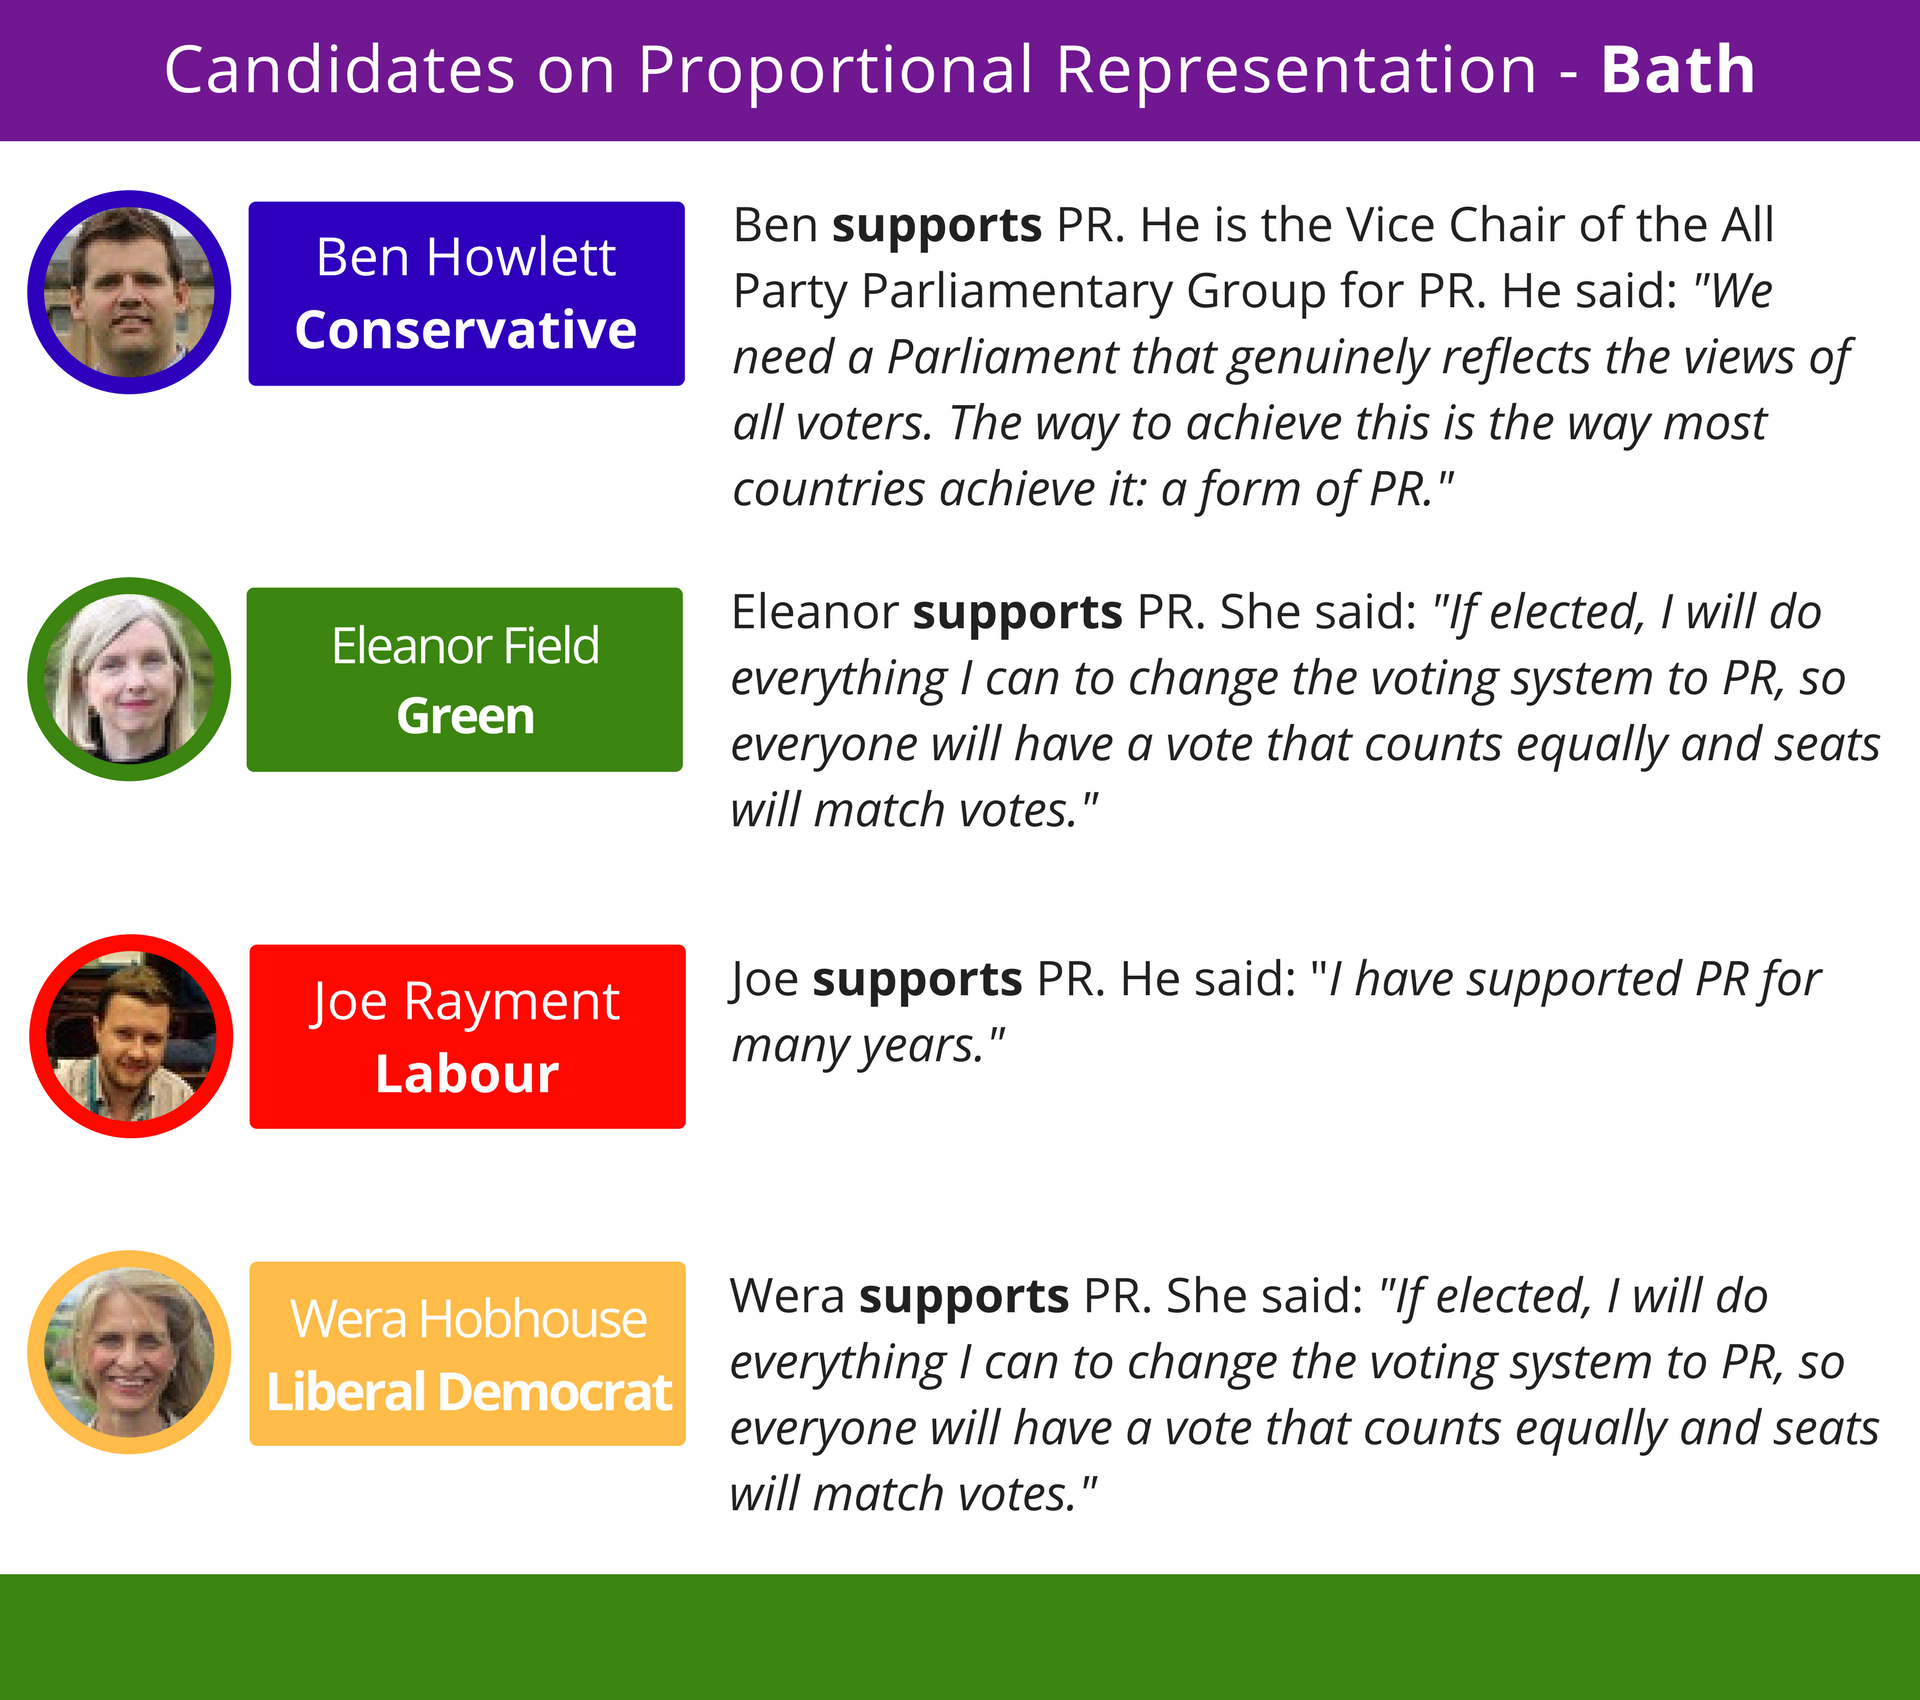 Bath is the luckiest constituency in the UK - the only one in which all the candidates are in favour of Proportional Representation. This includes Conservative incumbent, Ben Howlett.